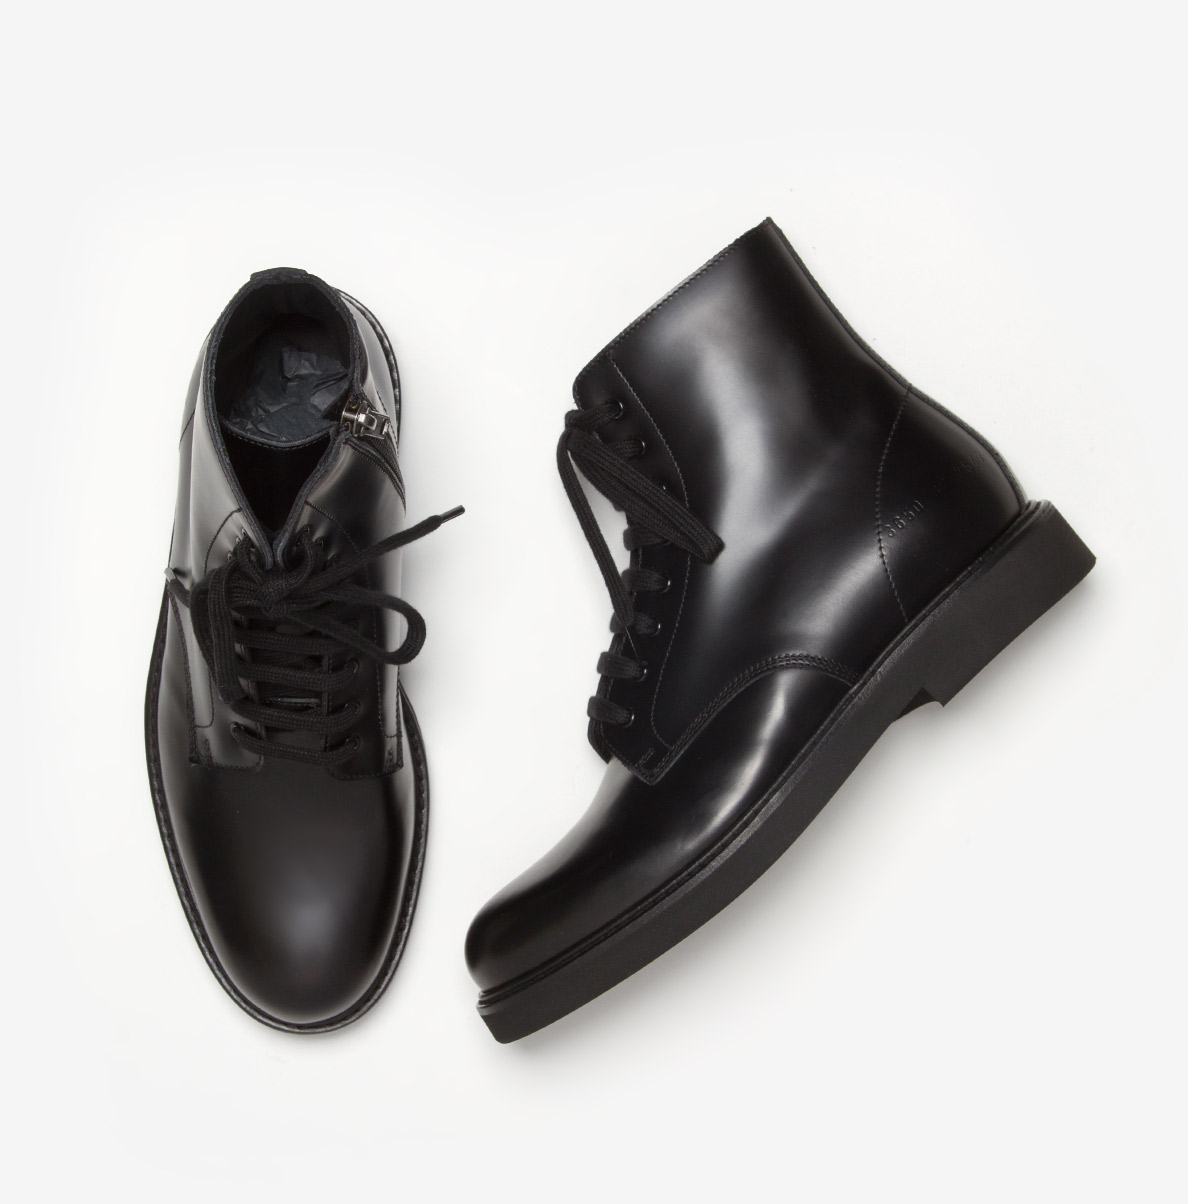 99a03a4cd2a7 Lyst - Common Projects Combat Boots in Black